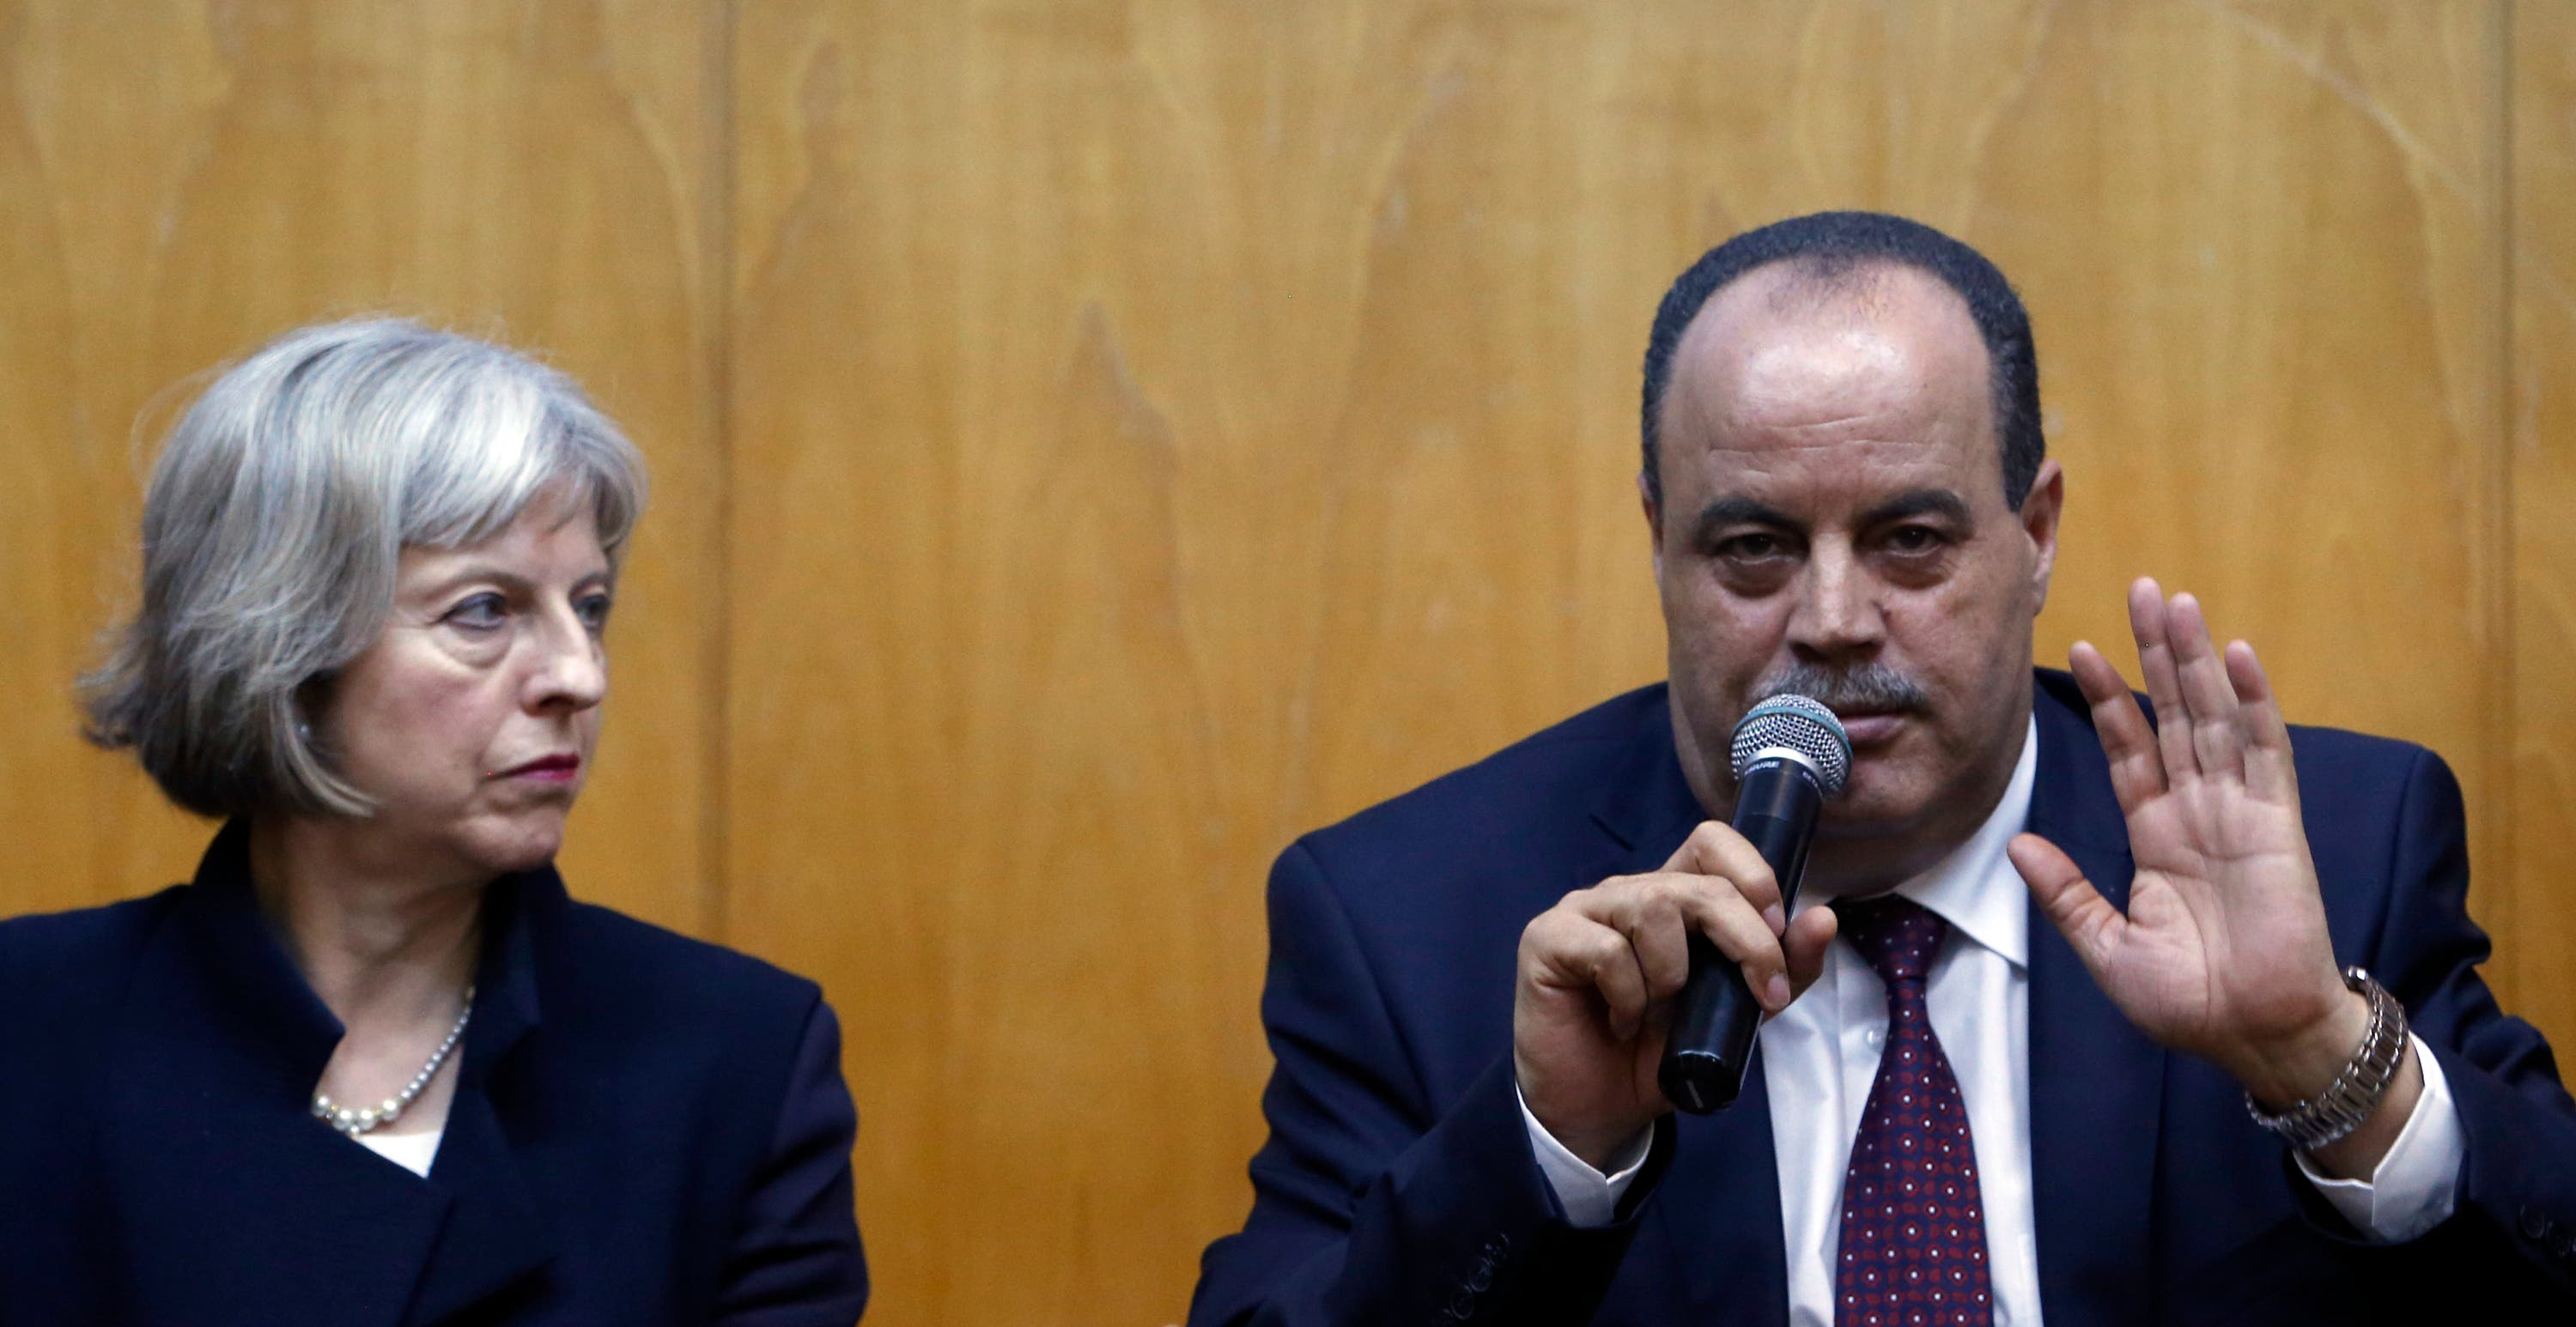 Tunisian Interior Minister Mohamed Najem Gharsalli, right, speaks with British Home Secretary Theresa May, during a press conference in Imperial Marhaba hotel in Sousse, Tunisia, Monday, June 29, 2015, the scene of Friday's beach massacre. (AP)